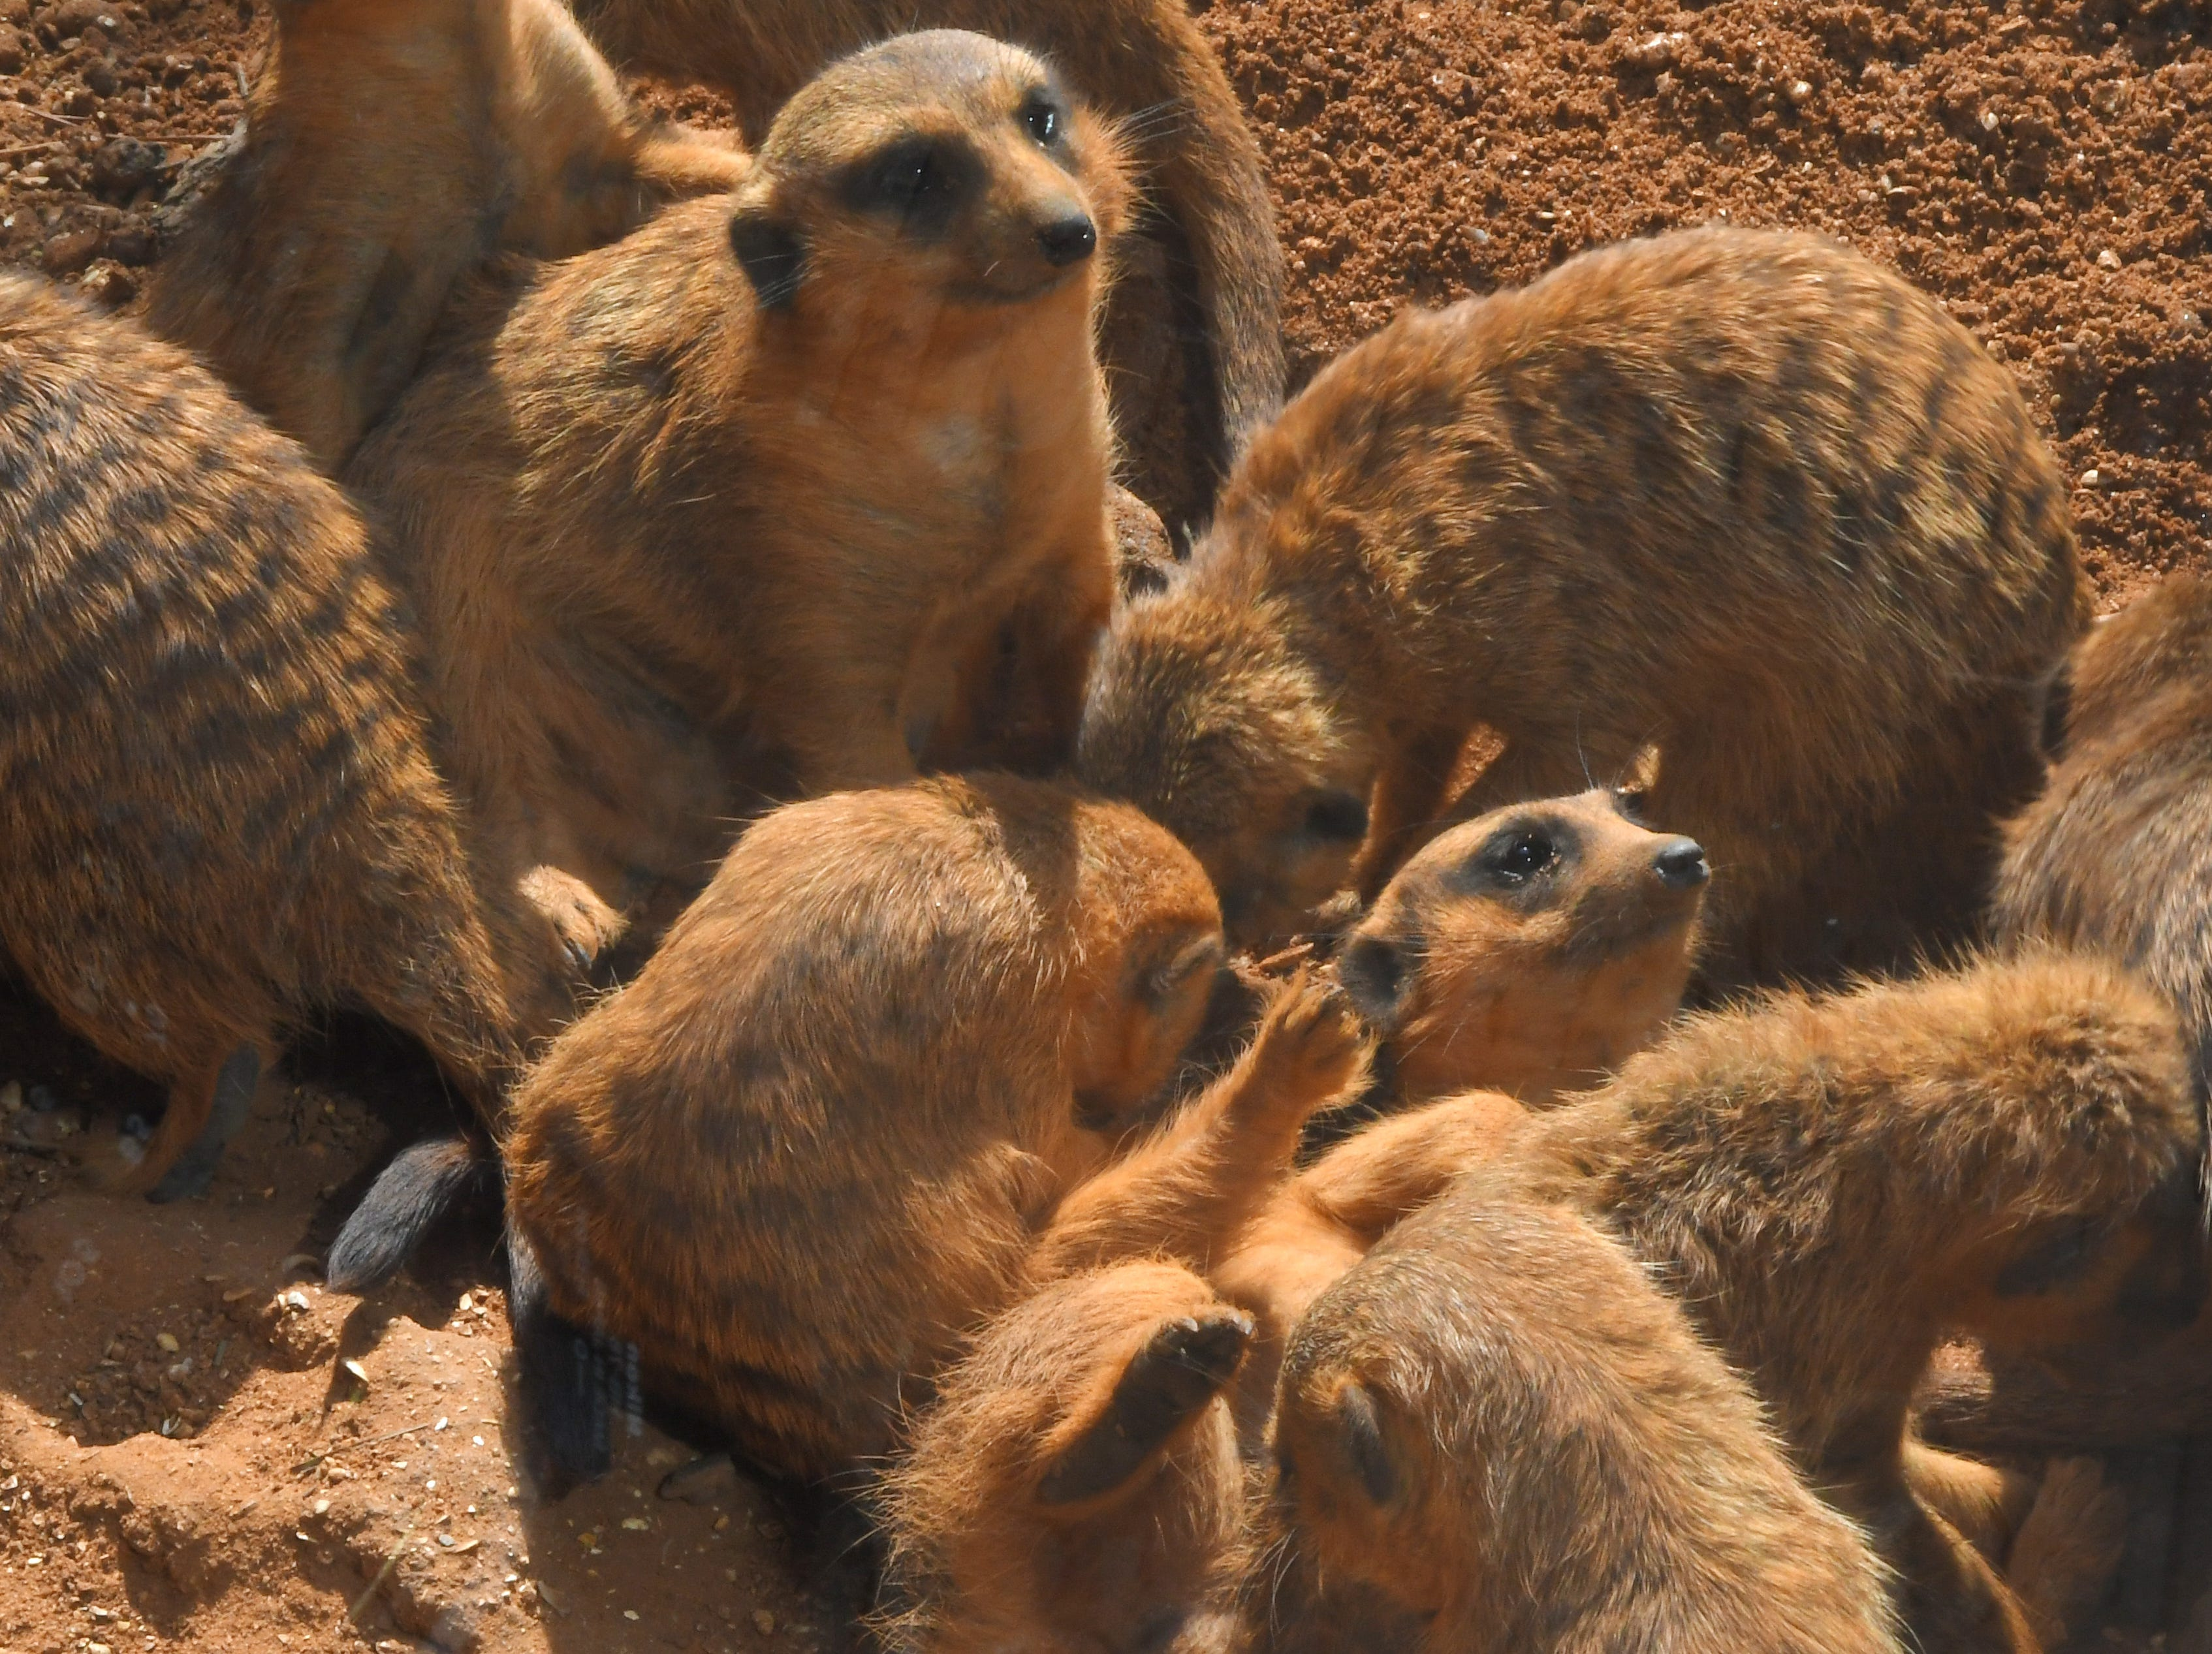 Meerkats at the Brevard Zoo in Viera. This location is a popular visit for locals and tourists alike.